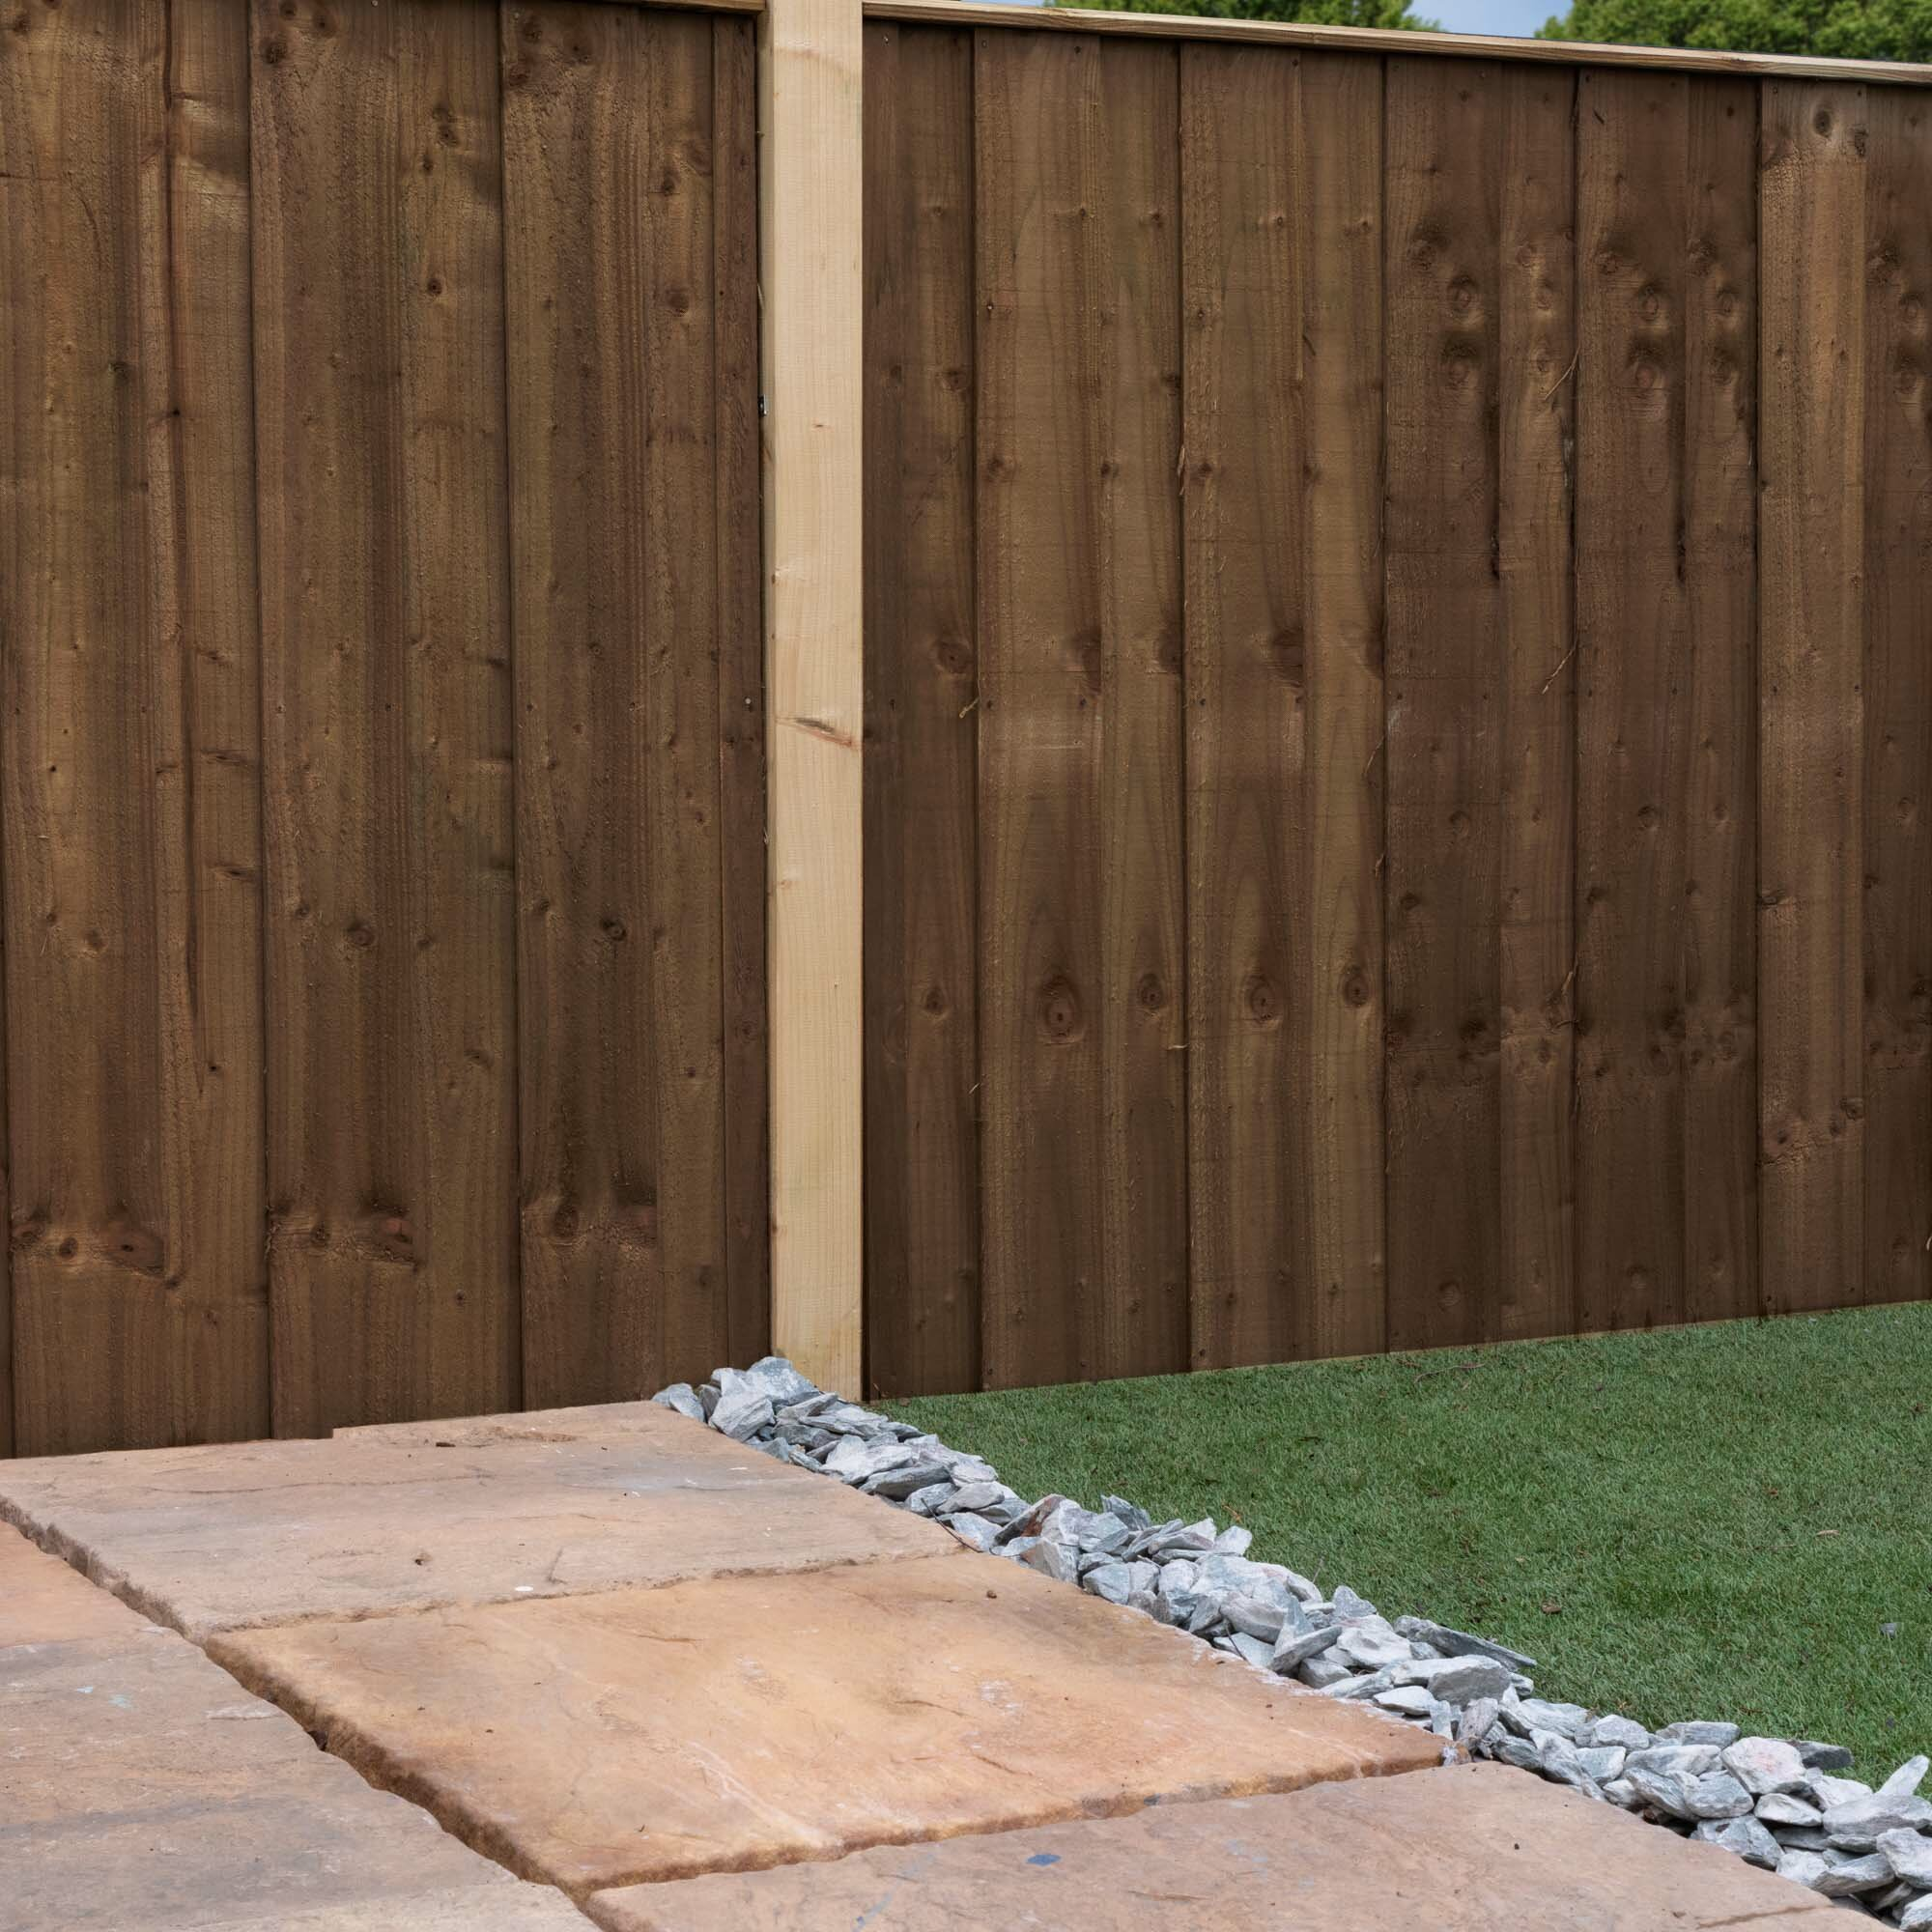 6' x 4' (1 82m x 1 22m) Hit and Miss Fence Panel